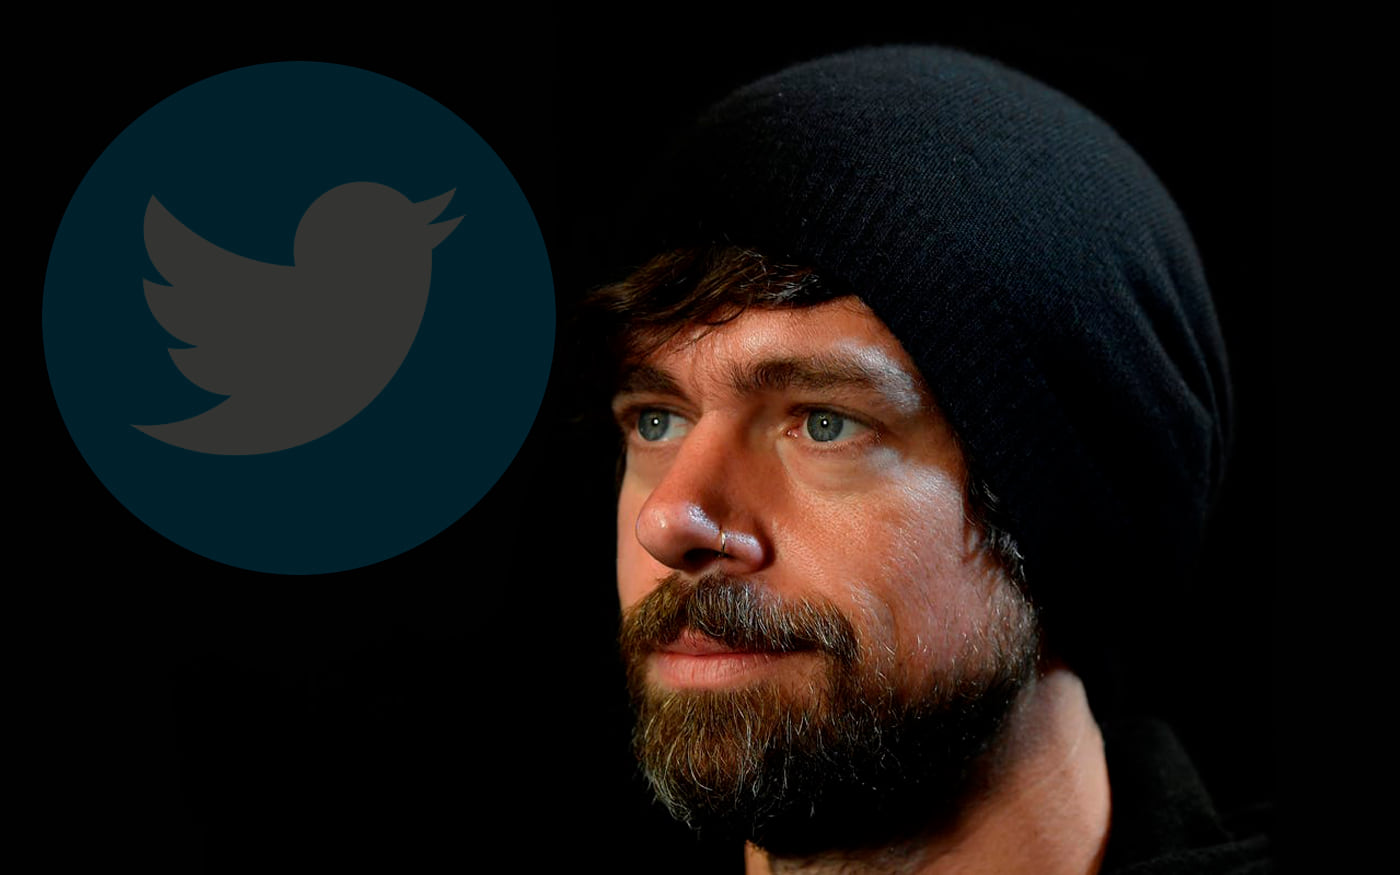 CEO do Twitter Jack Dorsey (REUTERS: Toby Melville)